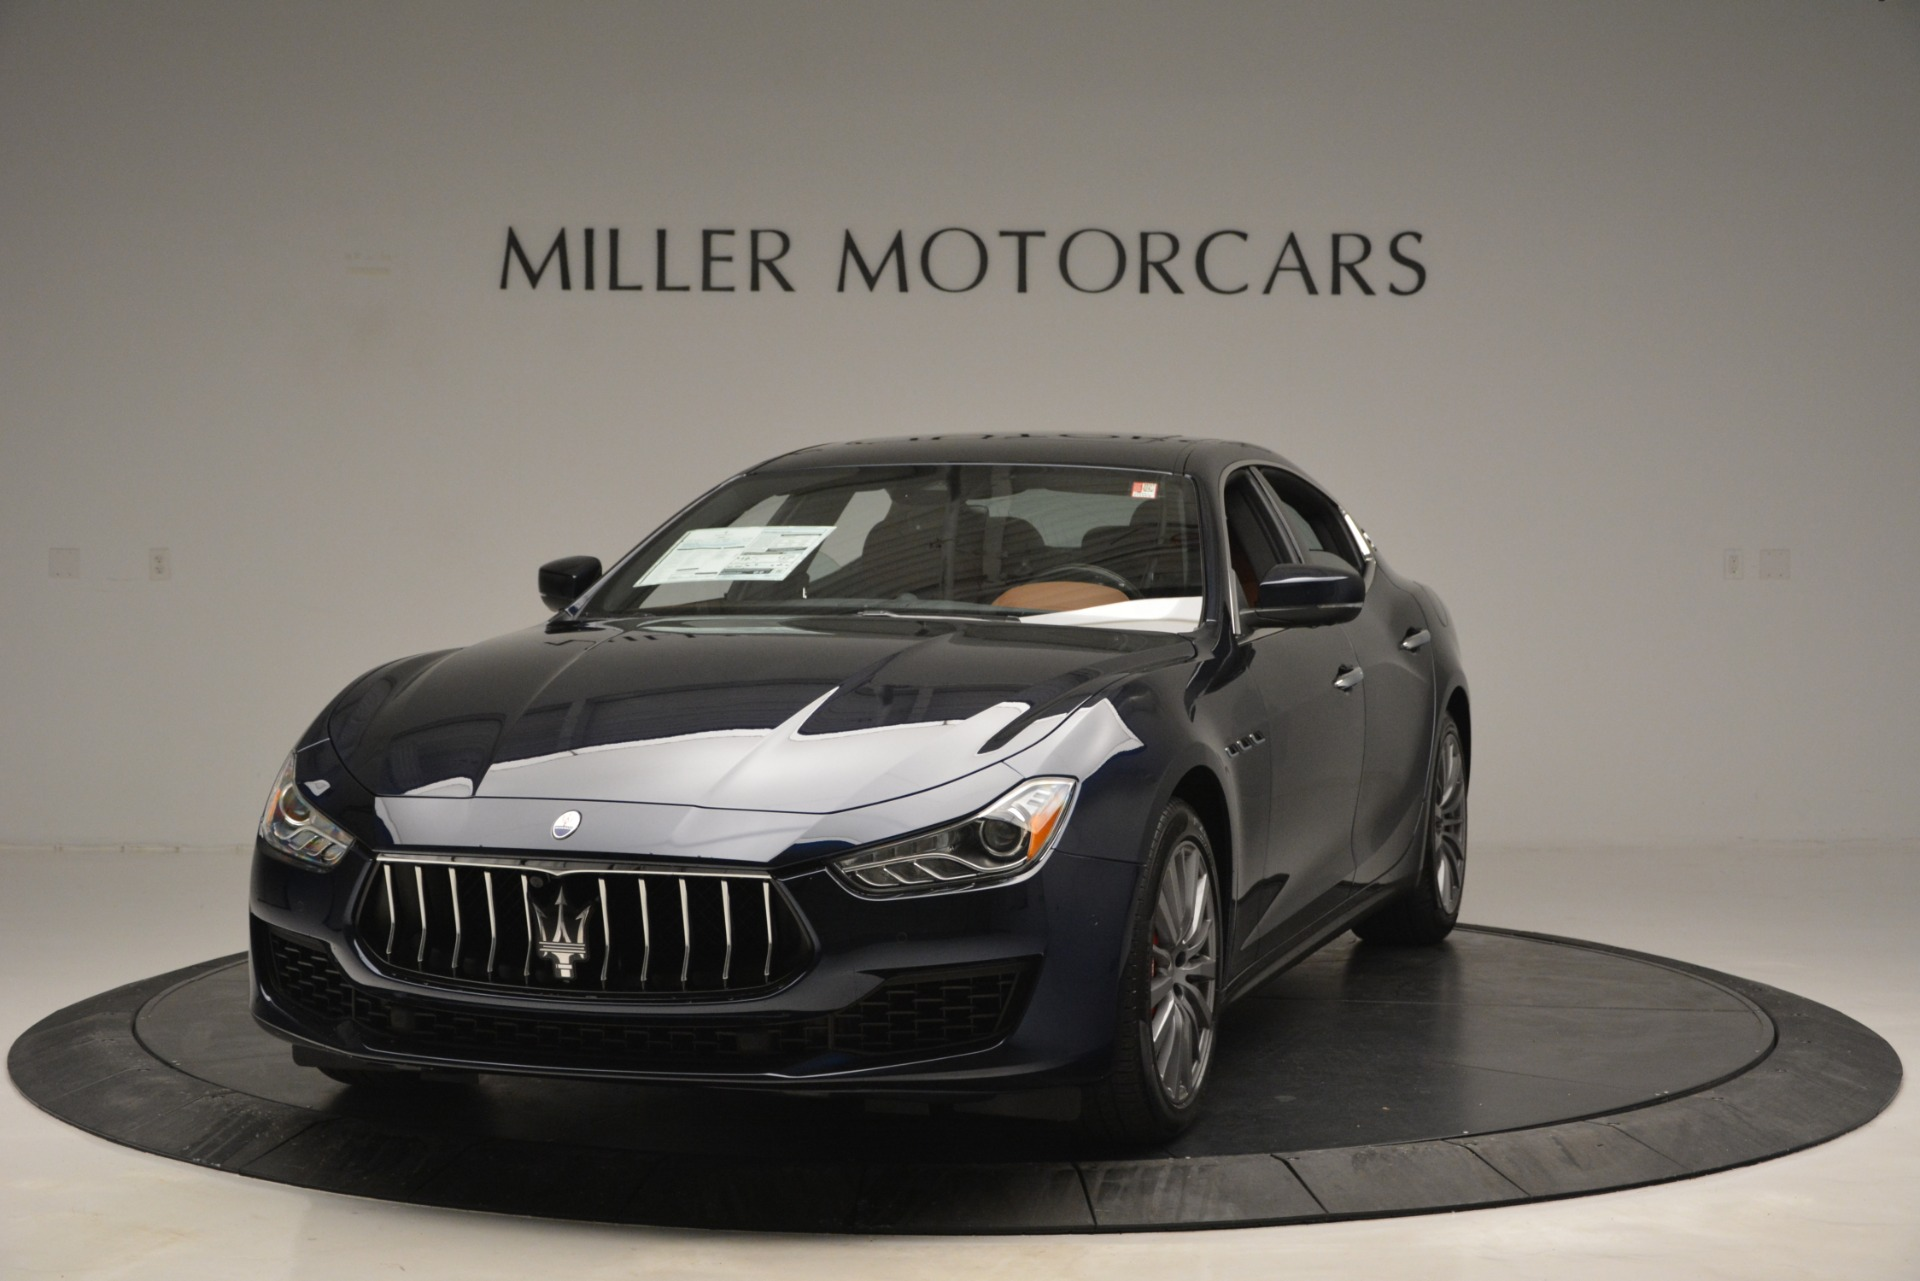 New 2019 Maserati Ghibli S Q4 For Sale In Greenwich, CT 2796_main